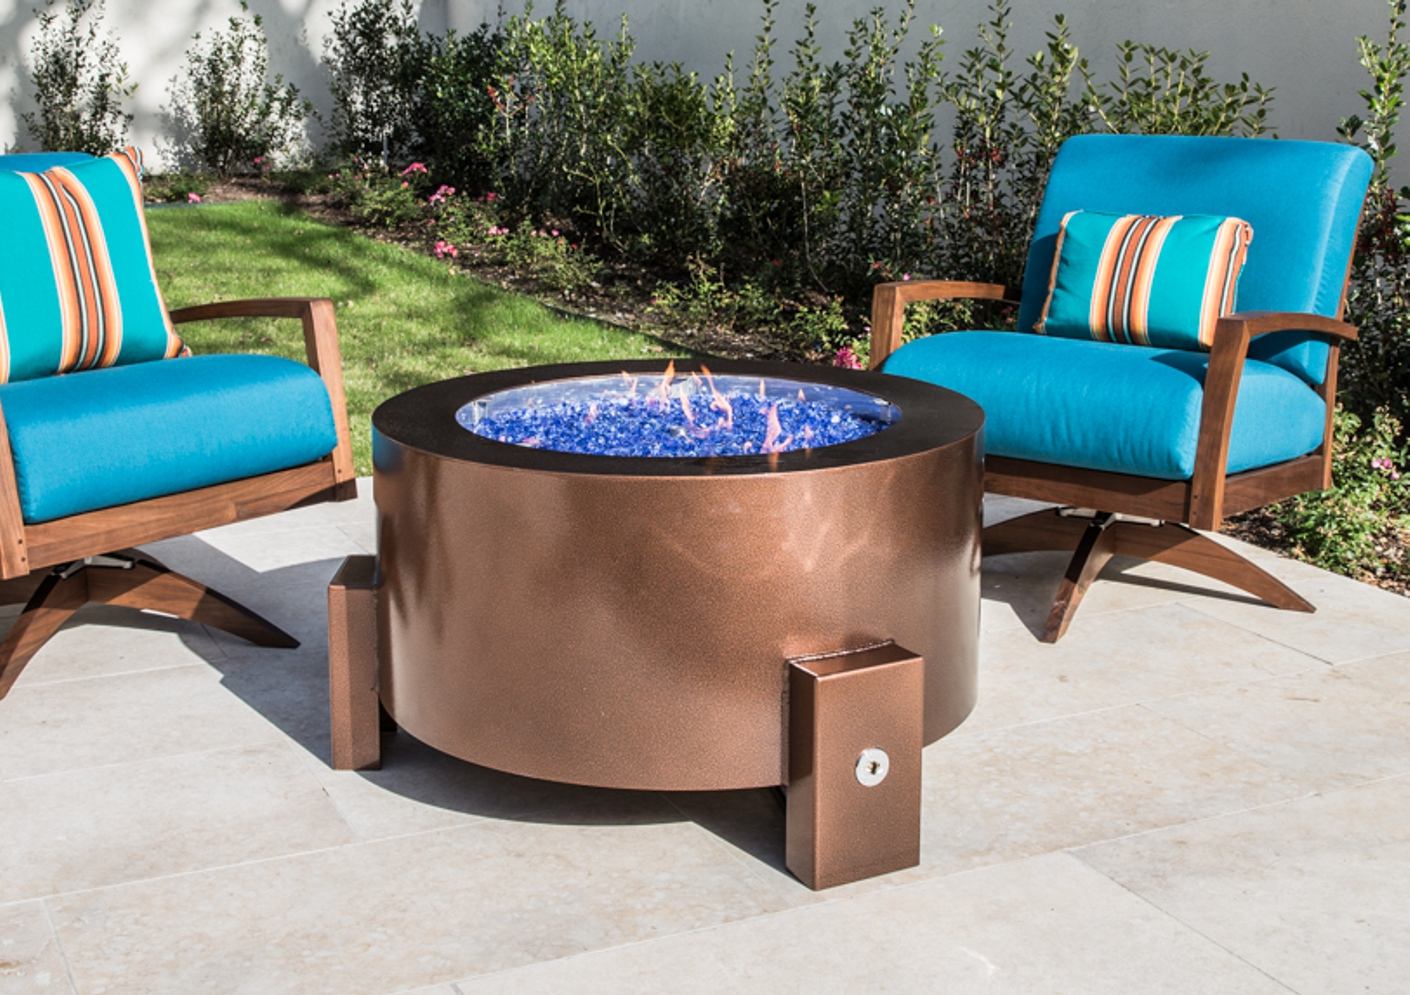 Steel Fire Pit | Gas Fire Pits | Hidden Tank Fire Pits | Propane Fire Pits  | Modern Fire PIts   Modern Fire Pits | Outdoor Planters | Custom Fire Pits  | ...